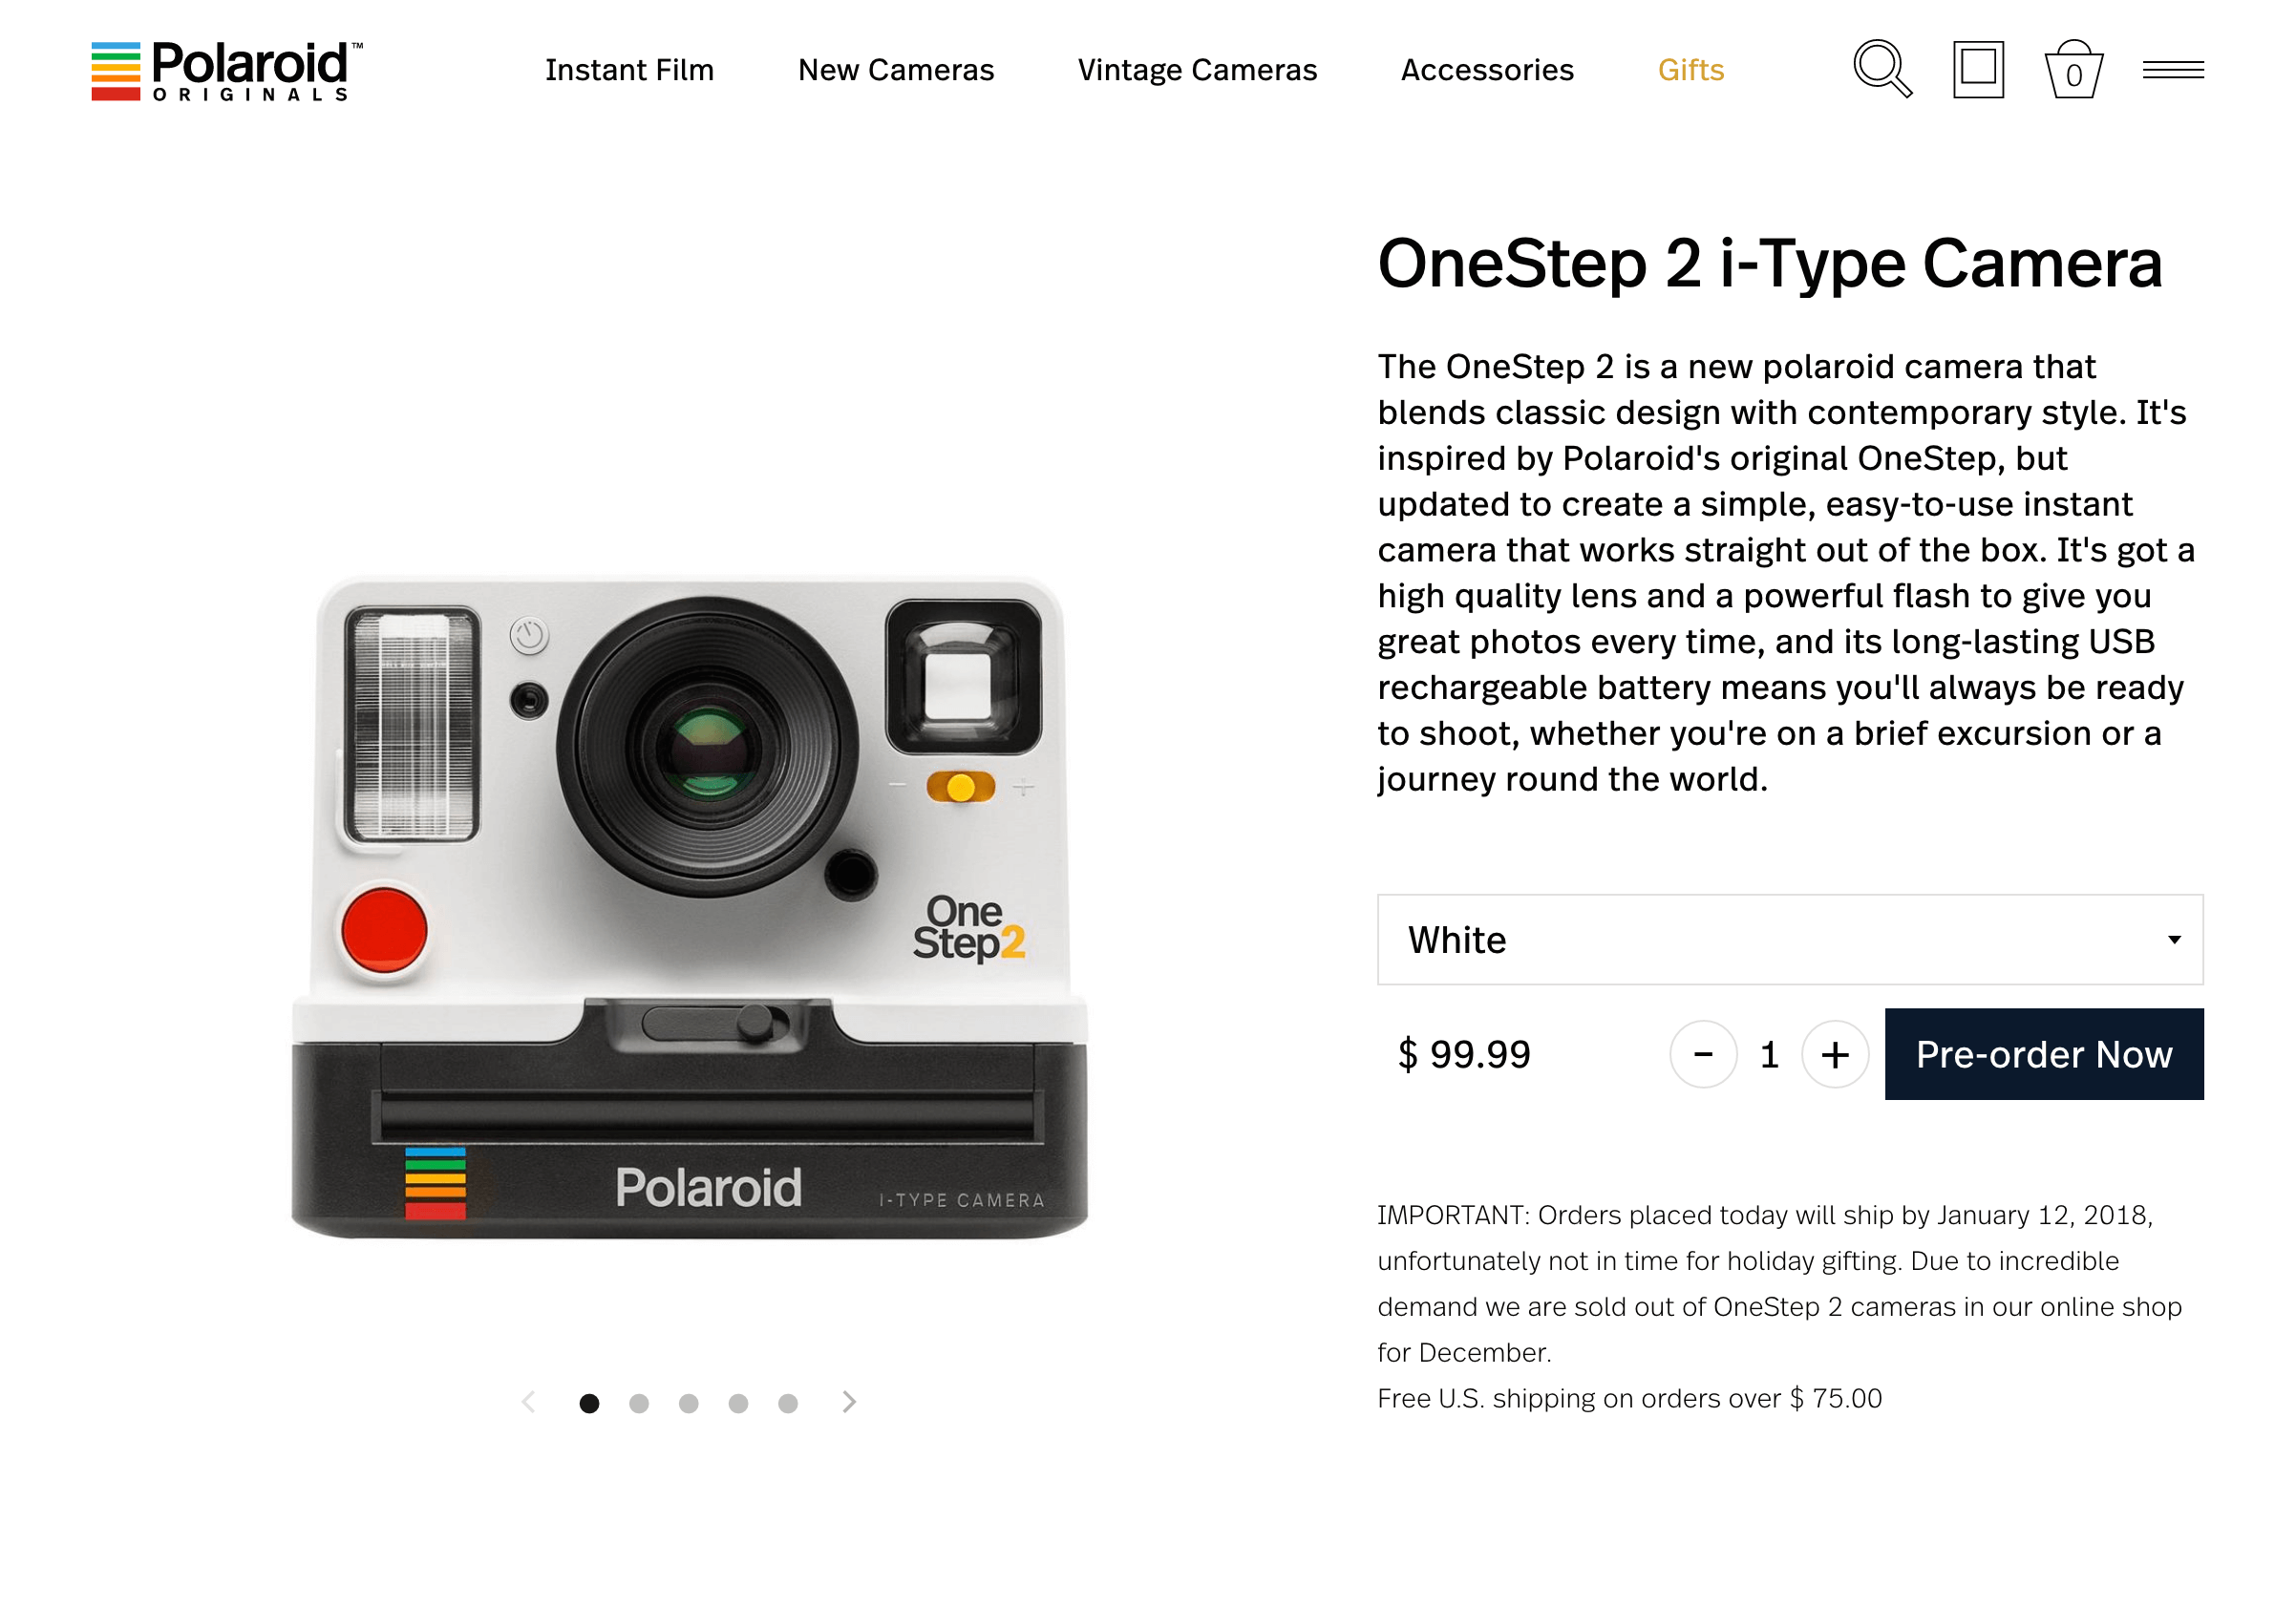 A 3rd screenshot of the Polaroid website